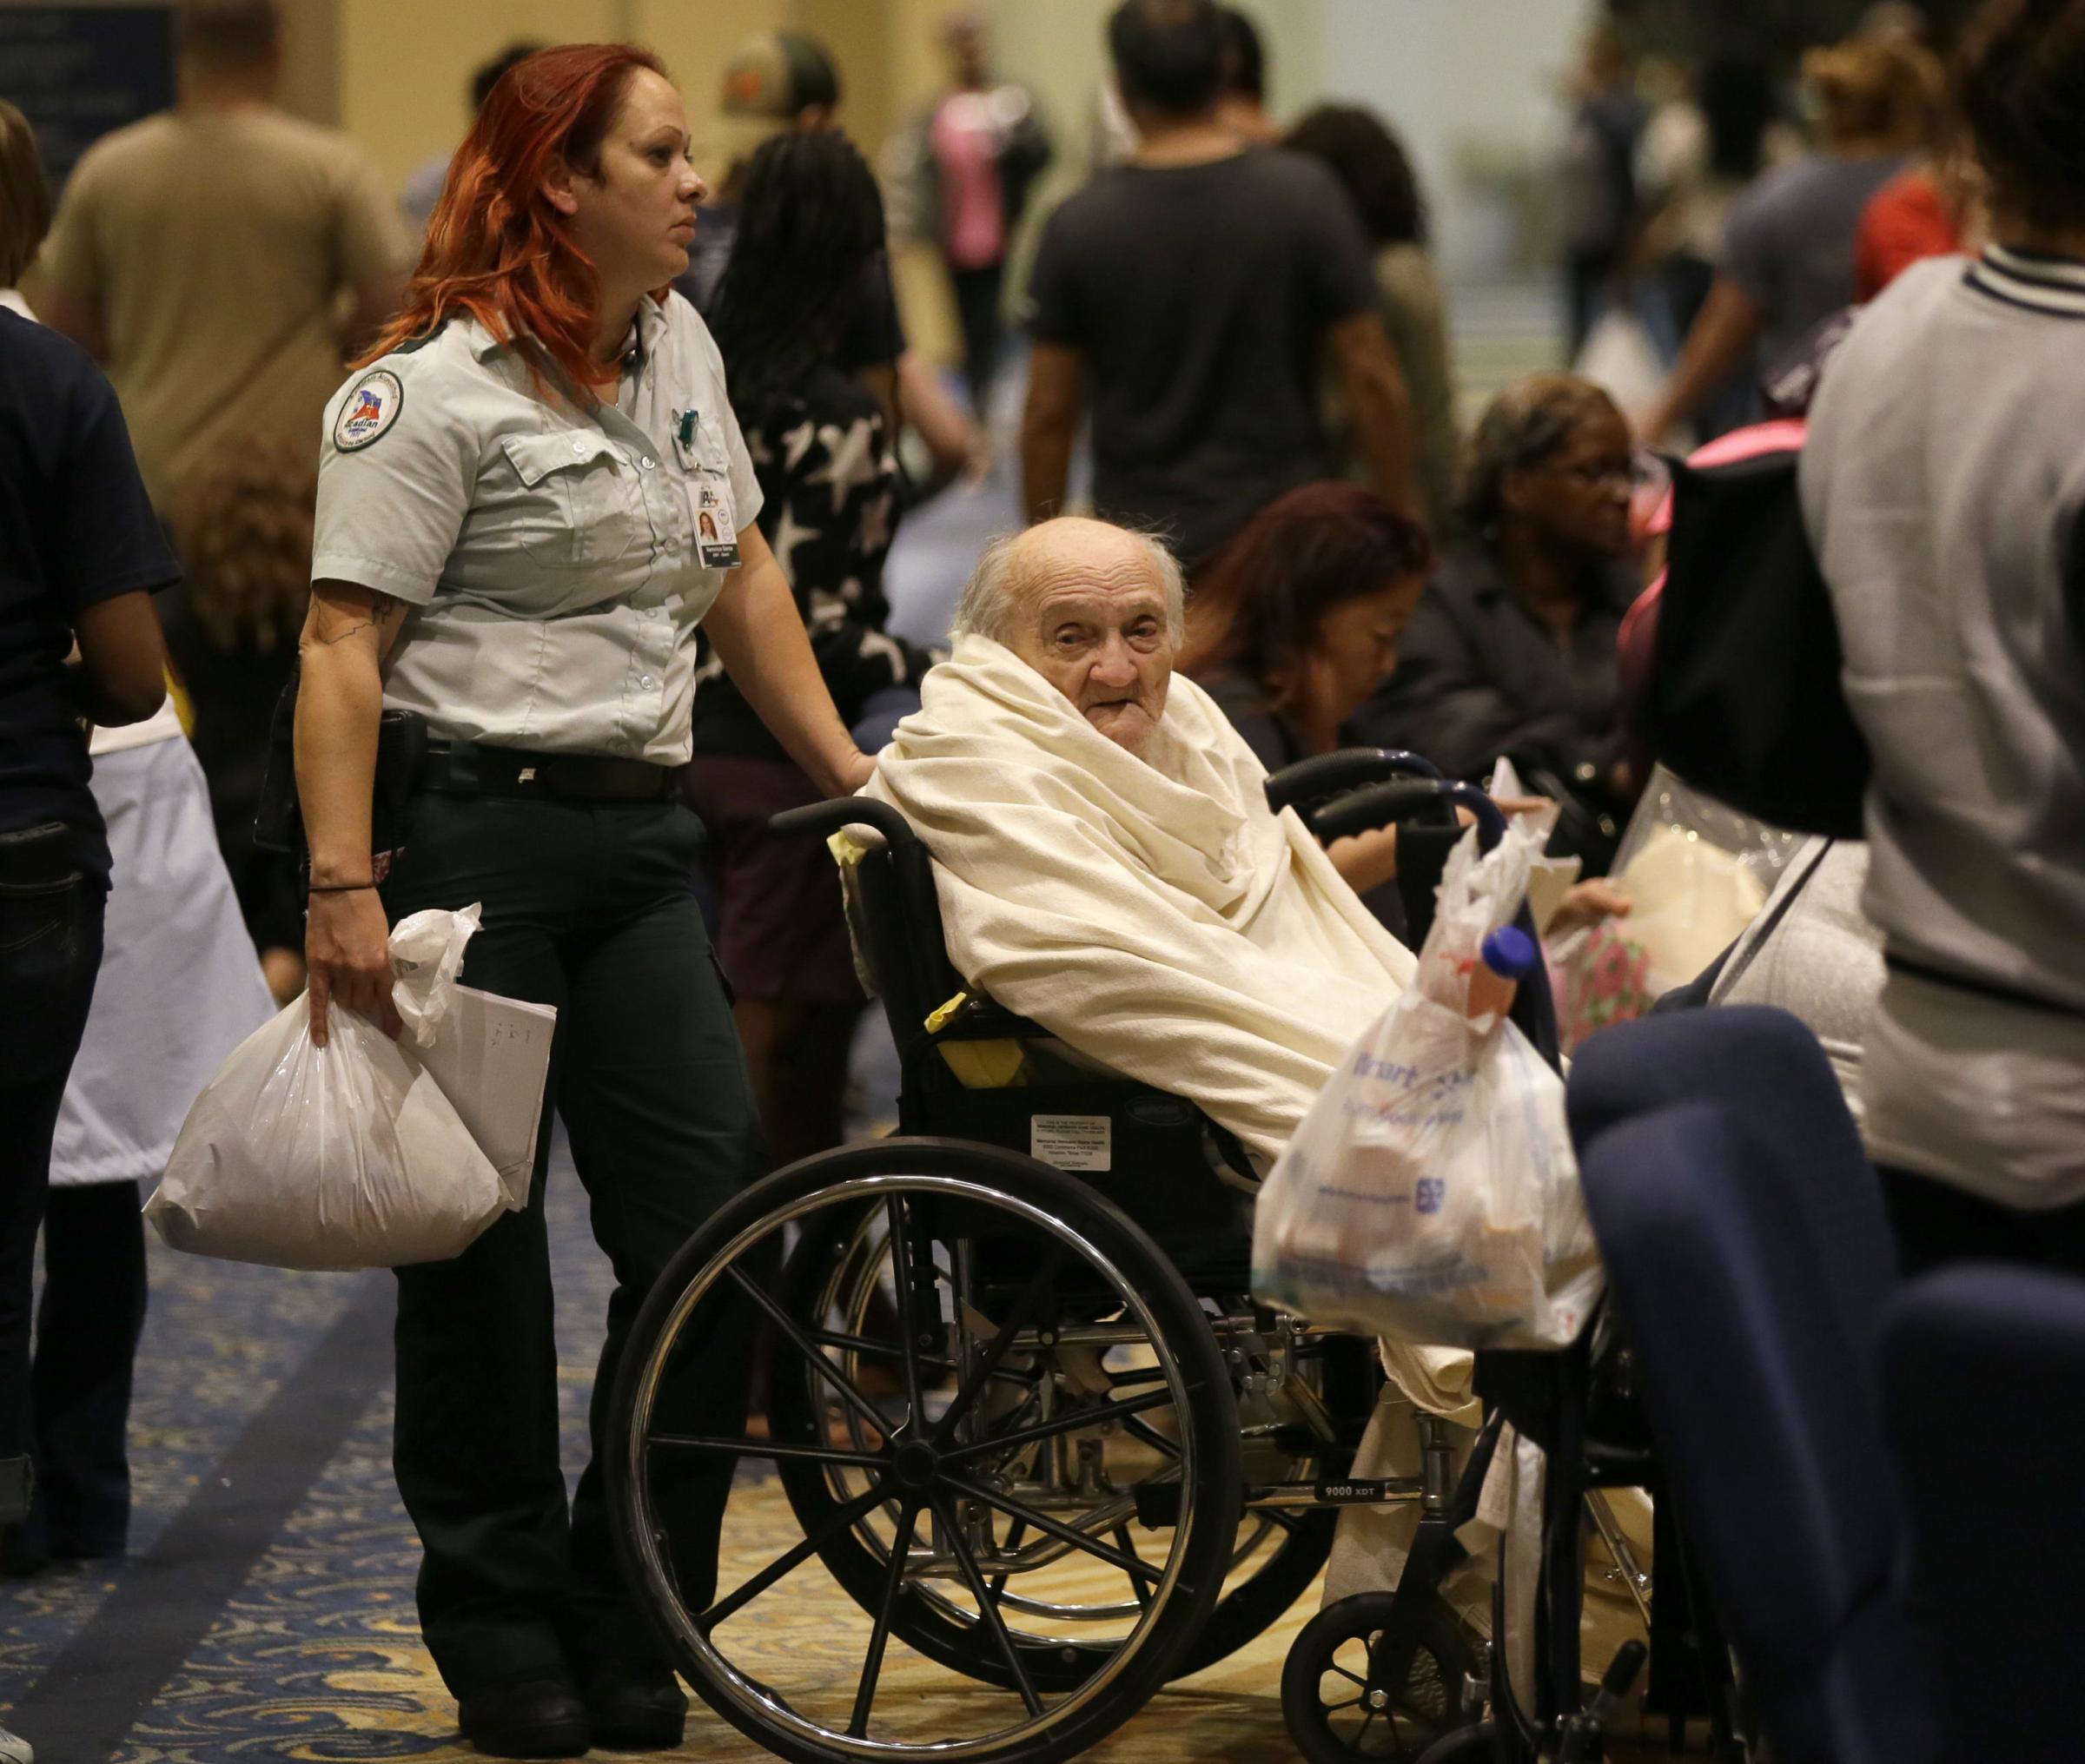 Evacuee Teddy Gifford, 90, waits for a medical evaluation with first responder Veronica Garza at the Lakewood Church in Houston, Texas. Photograph: AP Photo/LM Otero